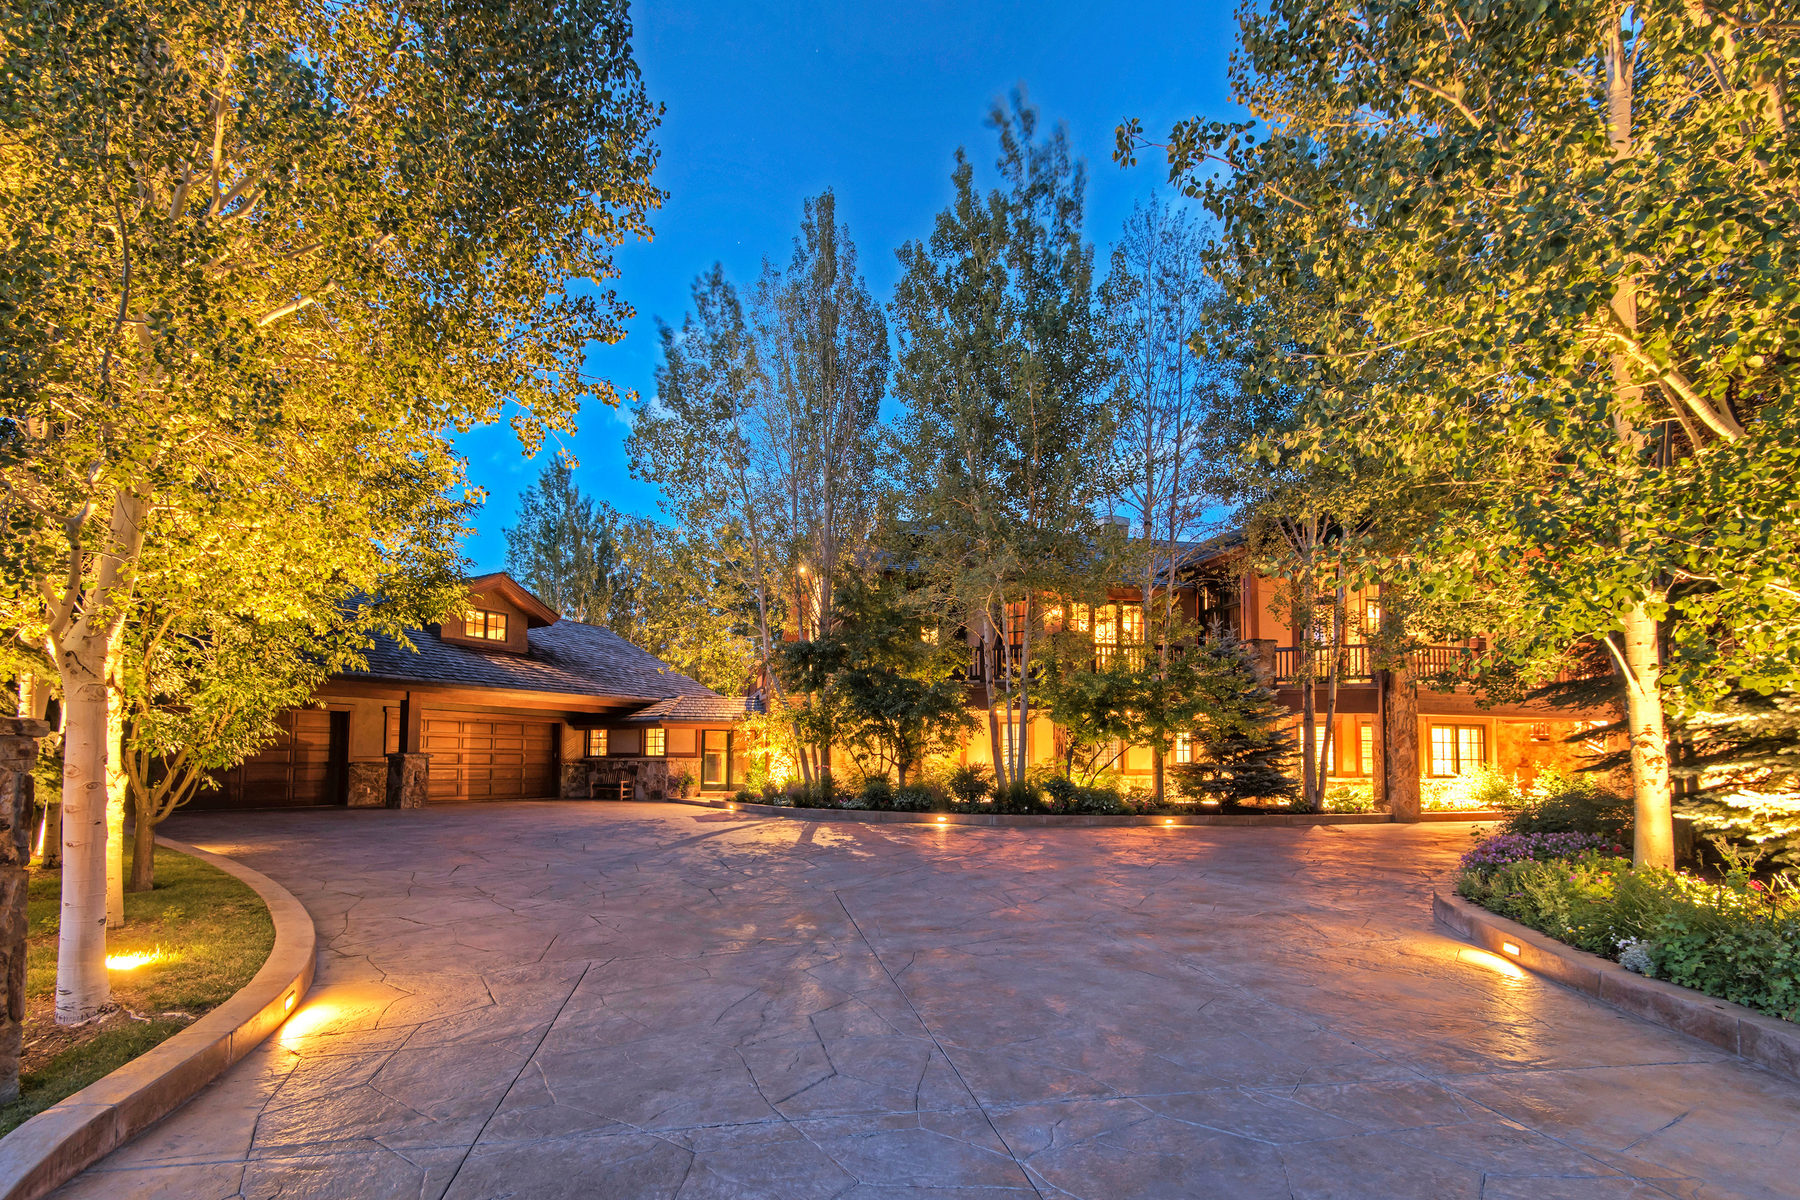 独户住宅 为 销售 在 Stunning Park Meadows Estate on over 2.5 Acres 2300 Lucky John Dr Park City, Utah, 84060 United States